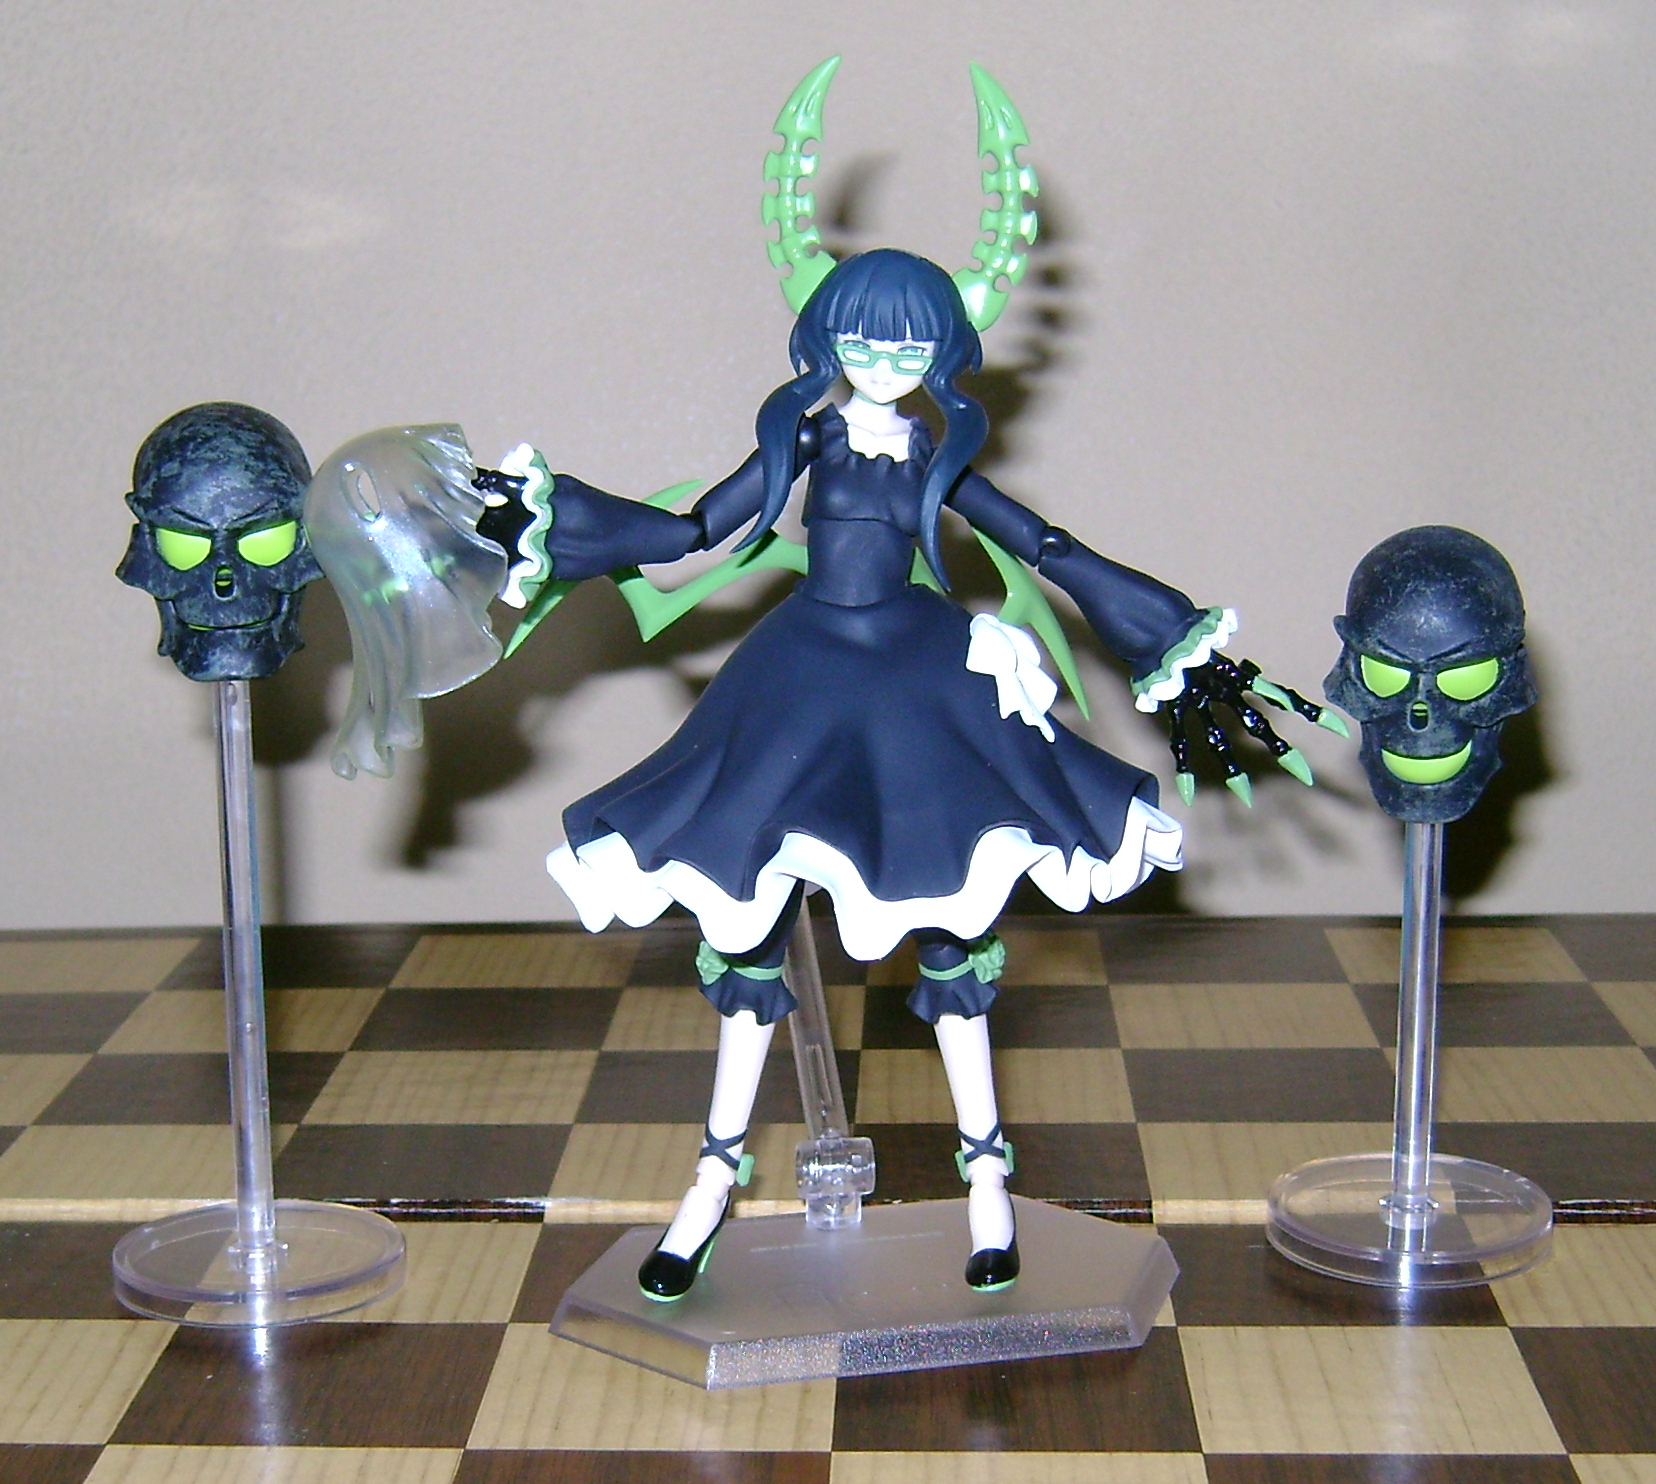 DMTV 4 Figma Fanatic: Dead Master, BRS TV Animation Version!